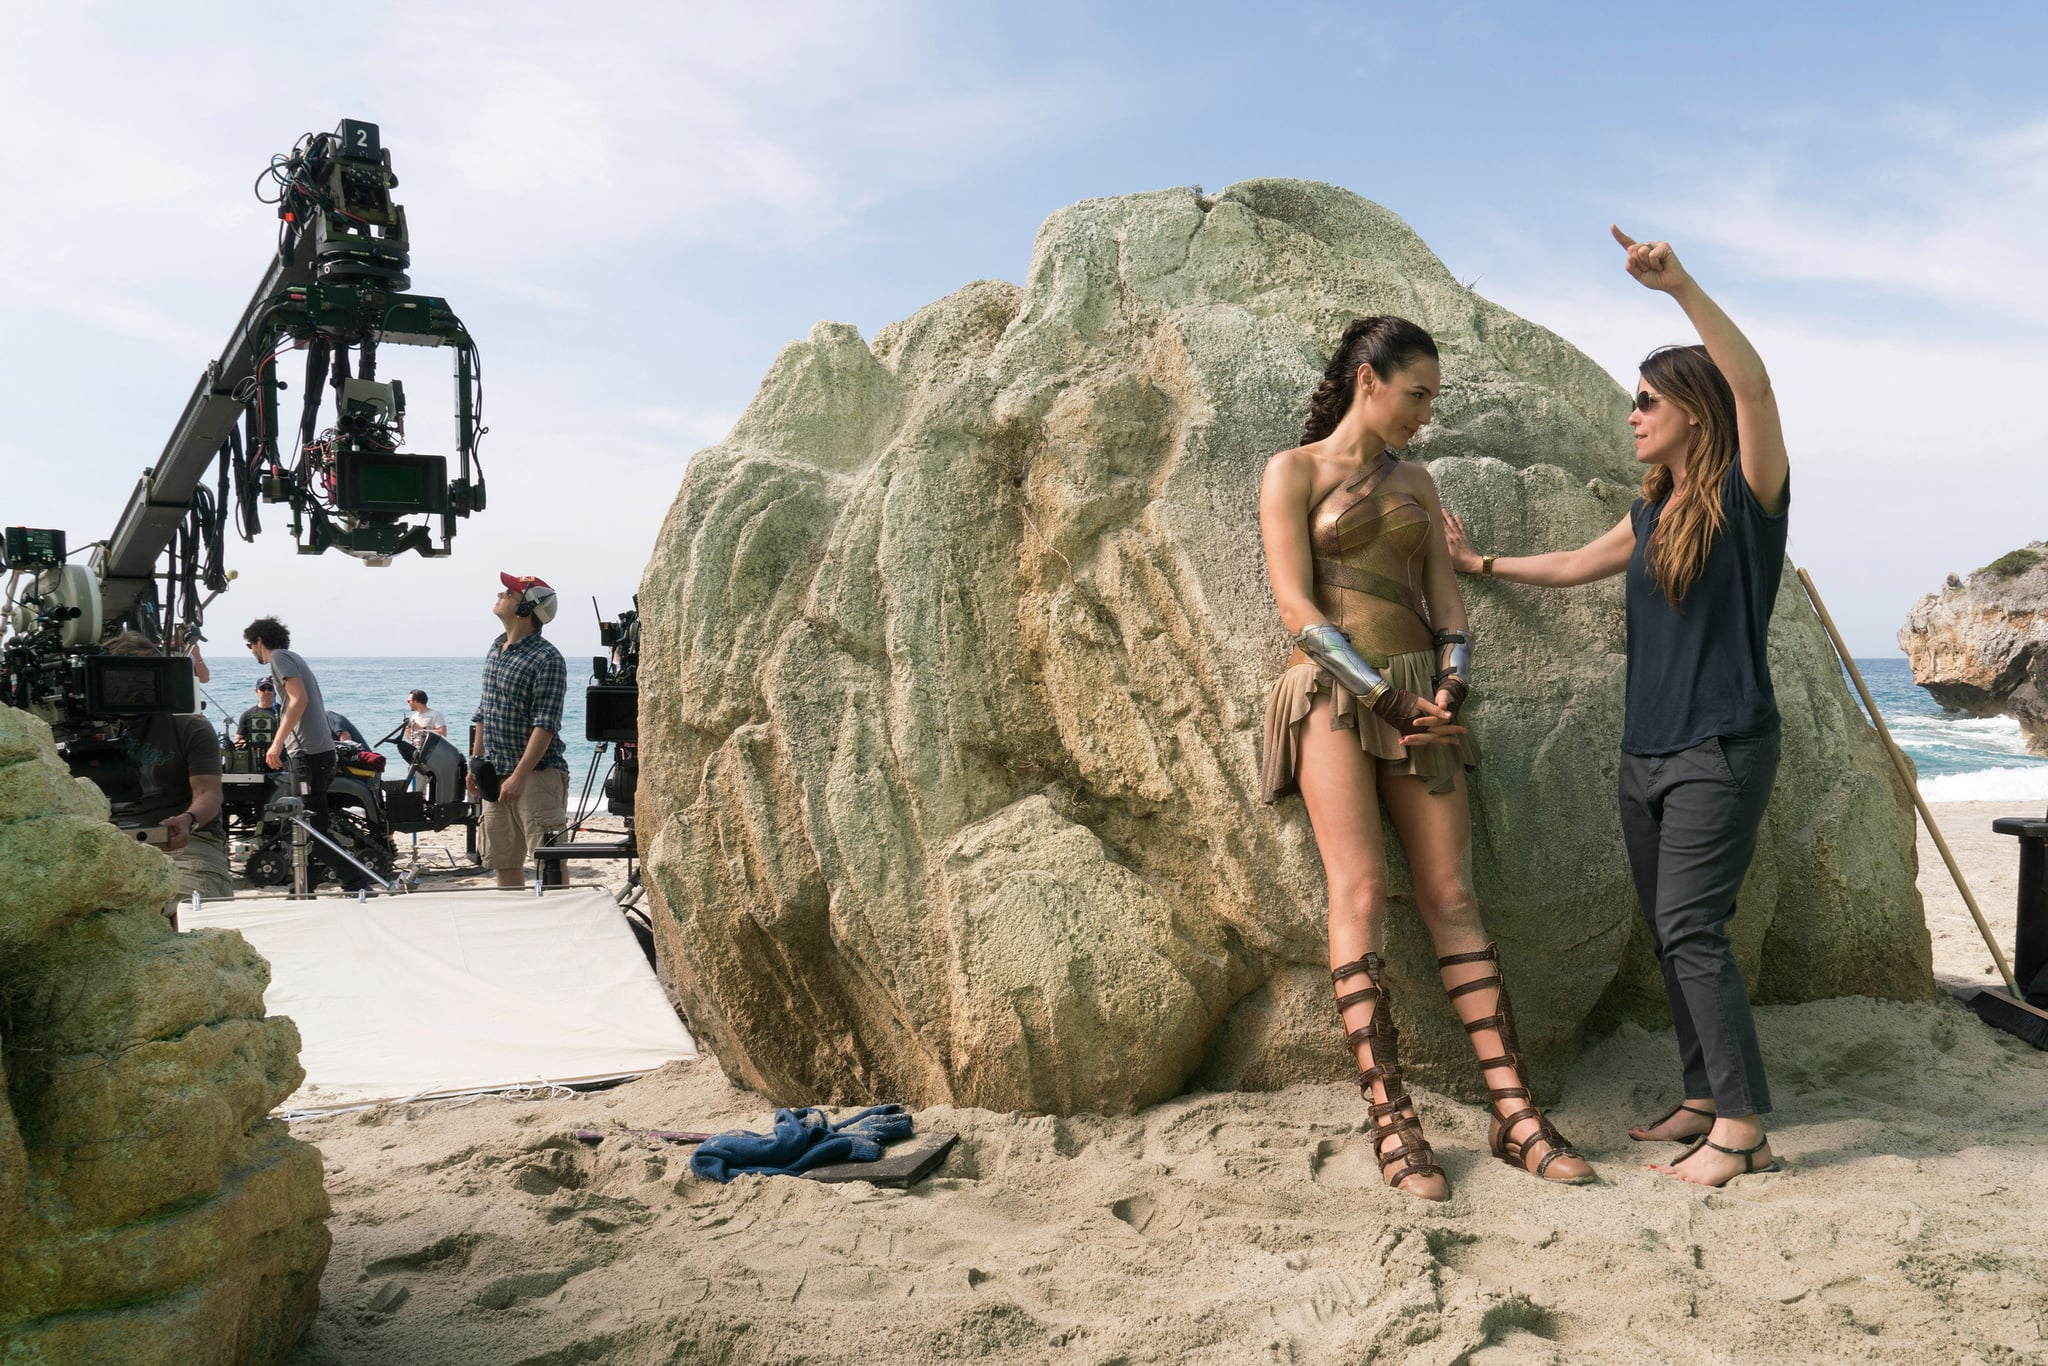 WONDER WOMAN, l-r: Gal Gadot, director Patty Jenkins on set, 2017. ph: Clay Enos/Warner Bros./courtesy Everett Collection